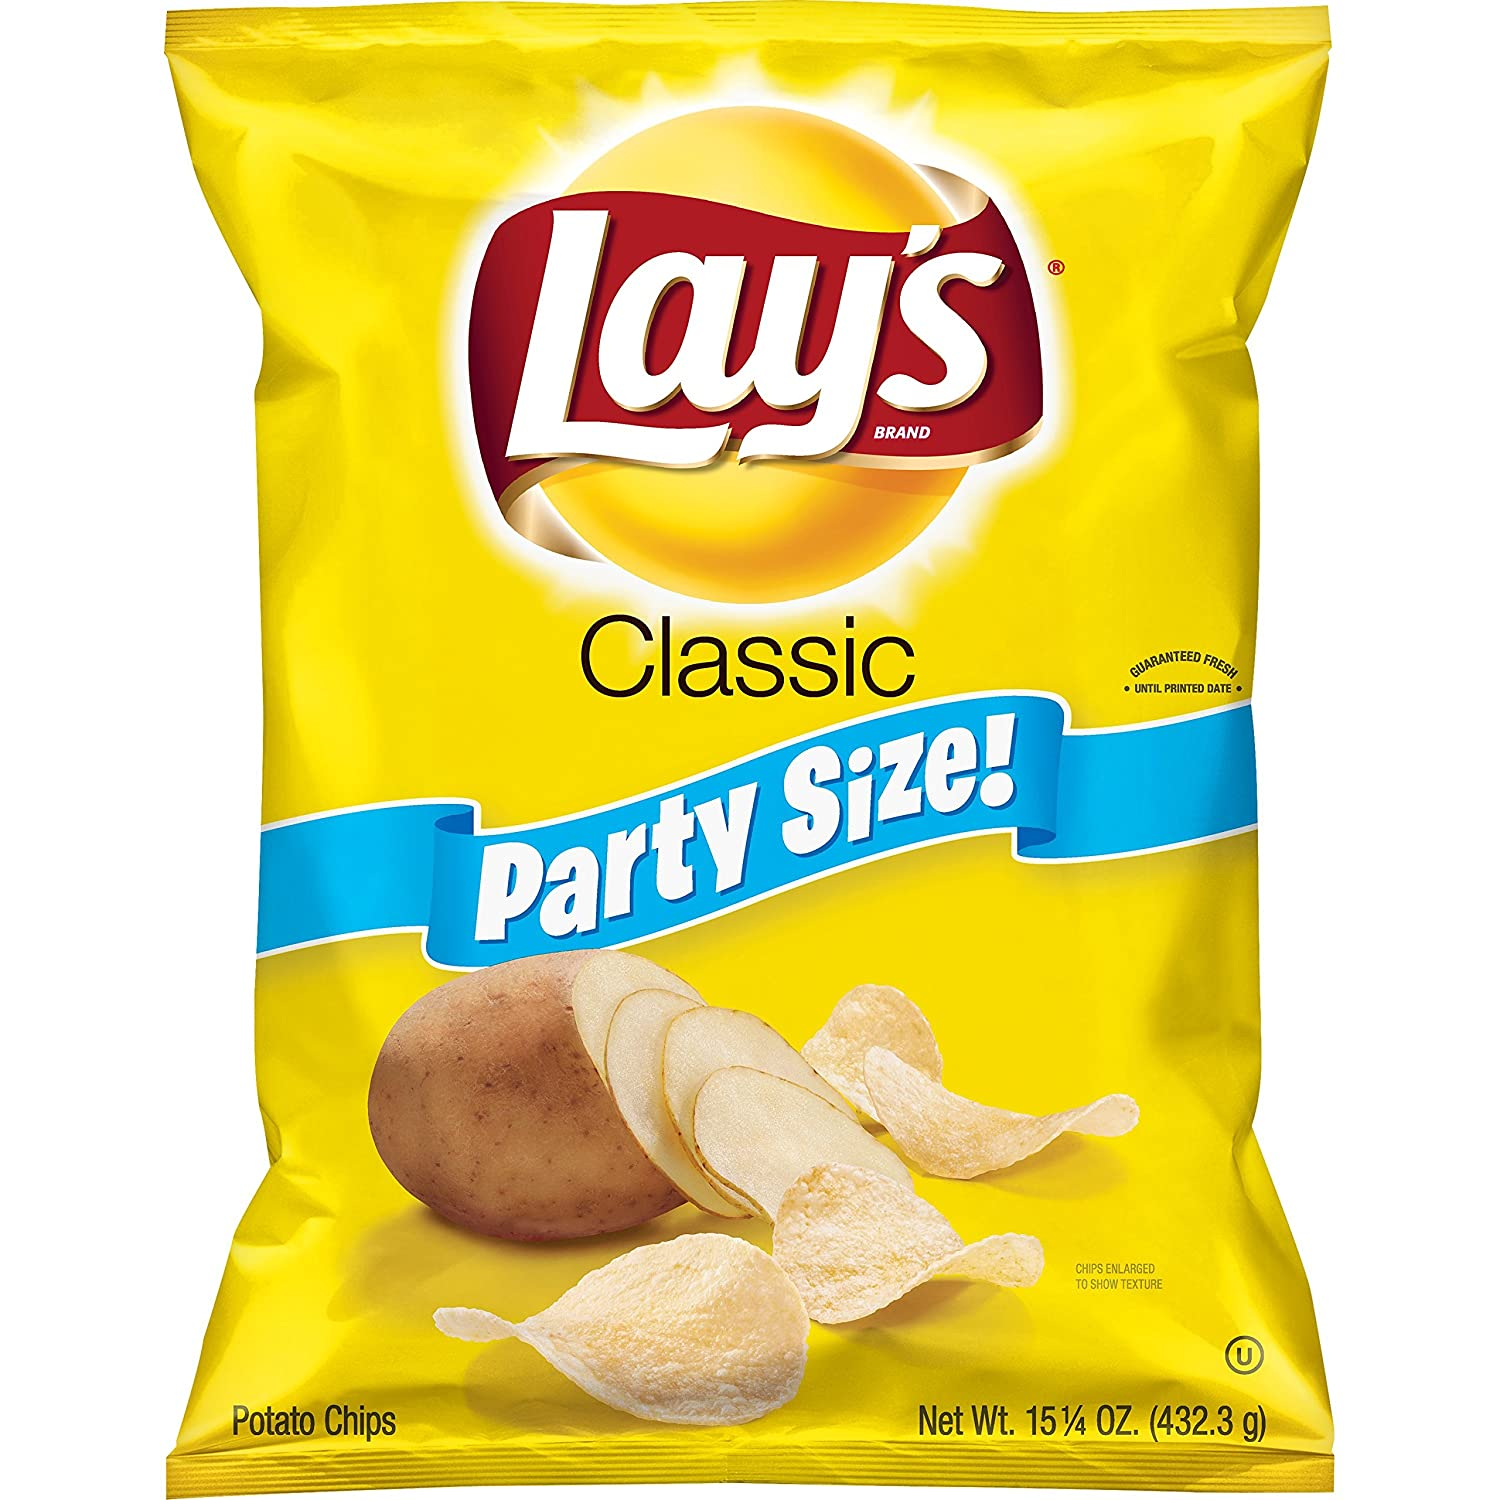 Lay's Classic Potato Chips, Party Size! (15 25 Ounce)